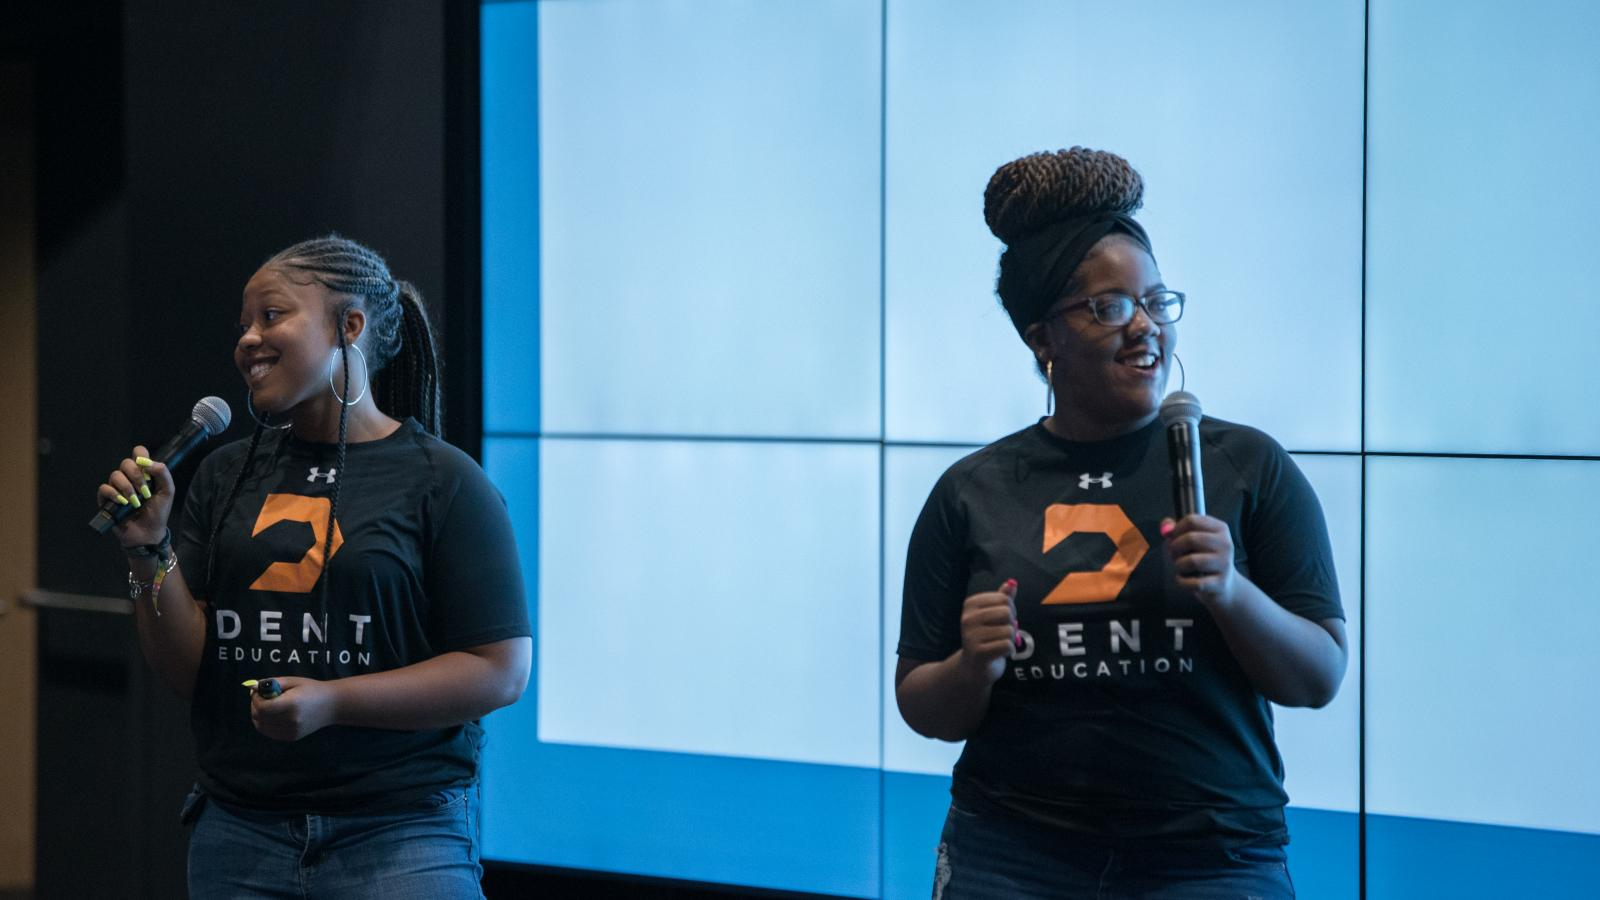 Jade and Aaliyah present Feel Good, Do Good, an initiative to destigmatize mental health in Baltimore public schools.